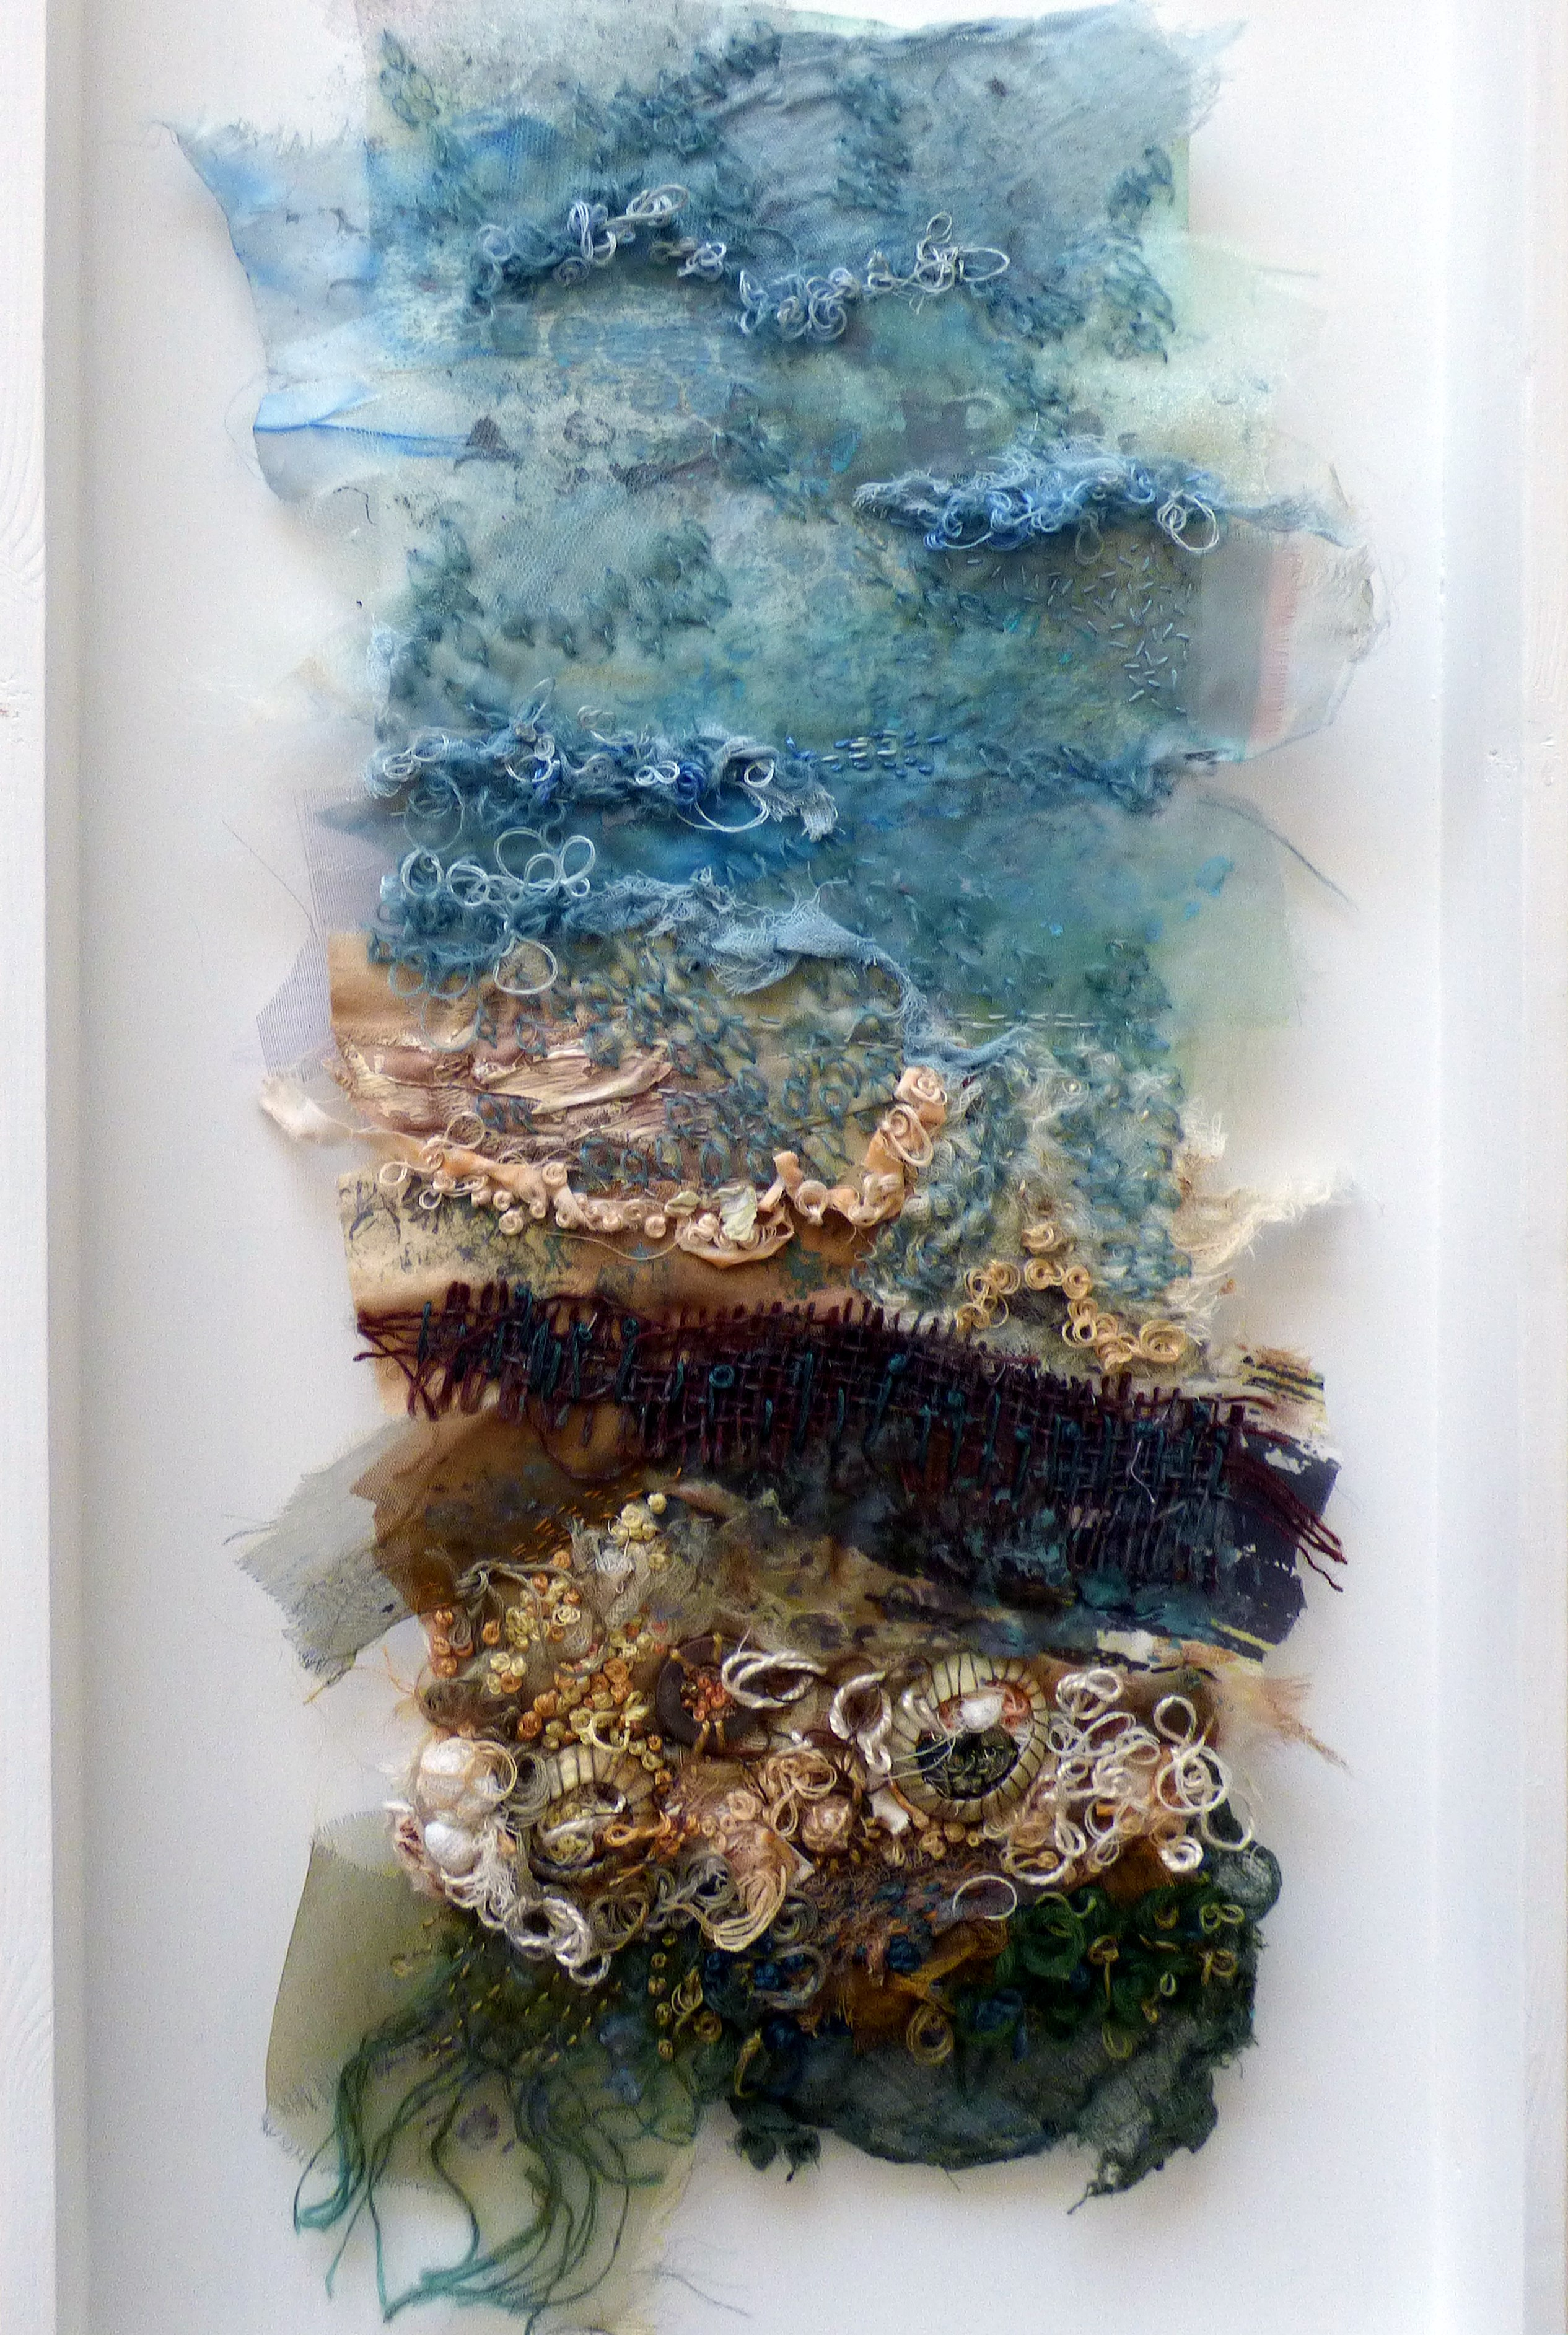 ON THE EDGE OF THE TIDE by Elsa Buch, Textile 21, Aug 2018. Textiles and mixed media